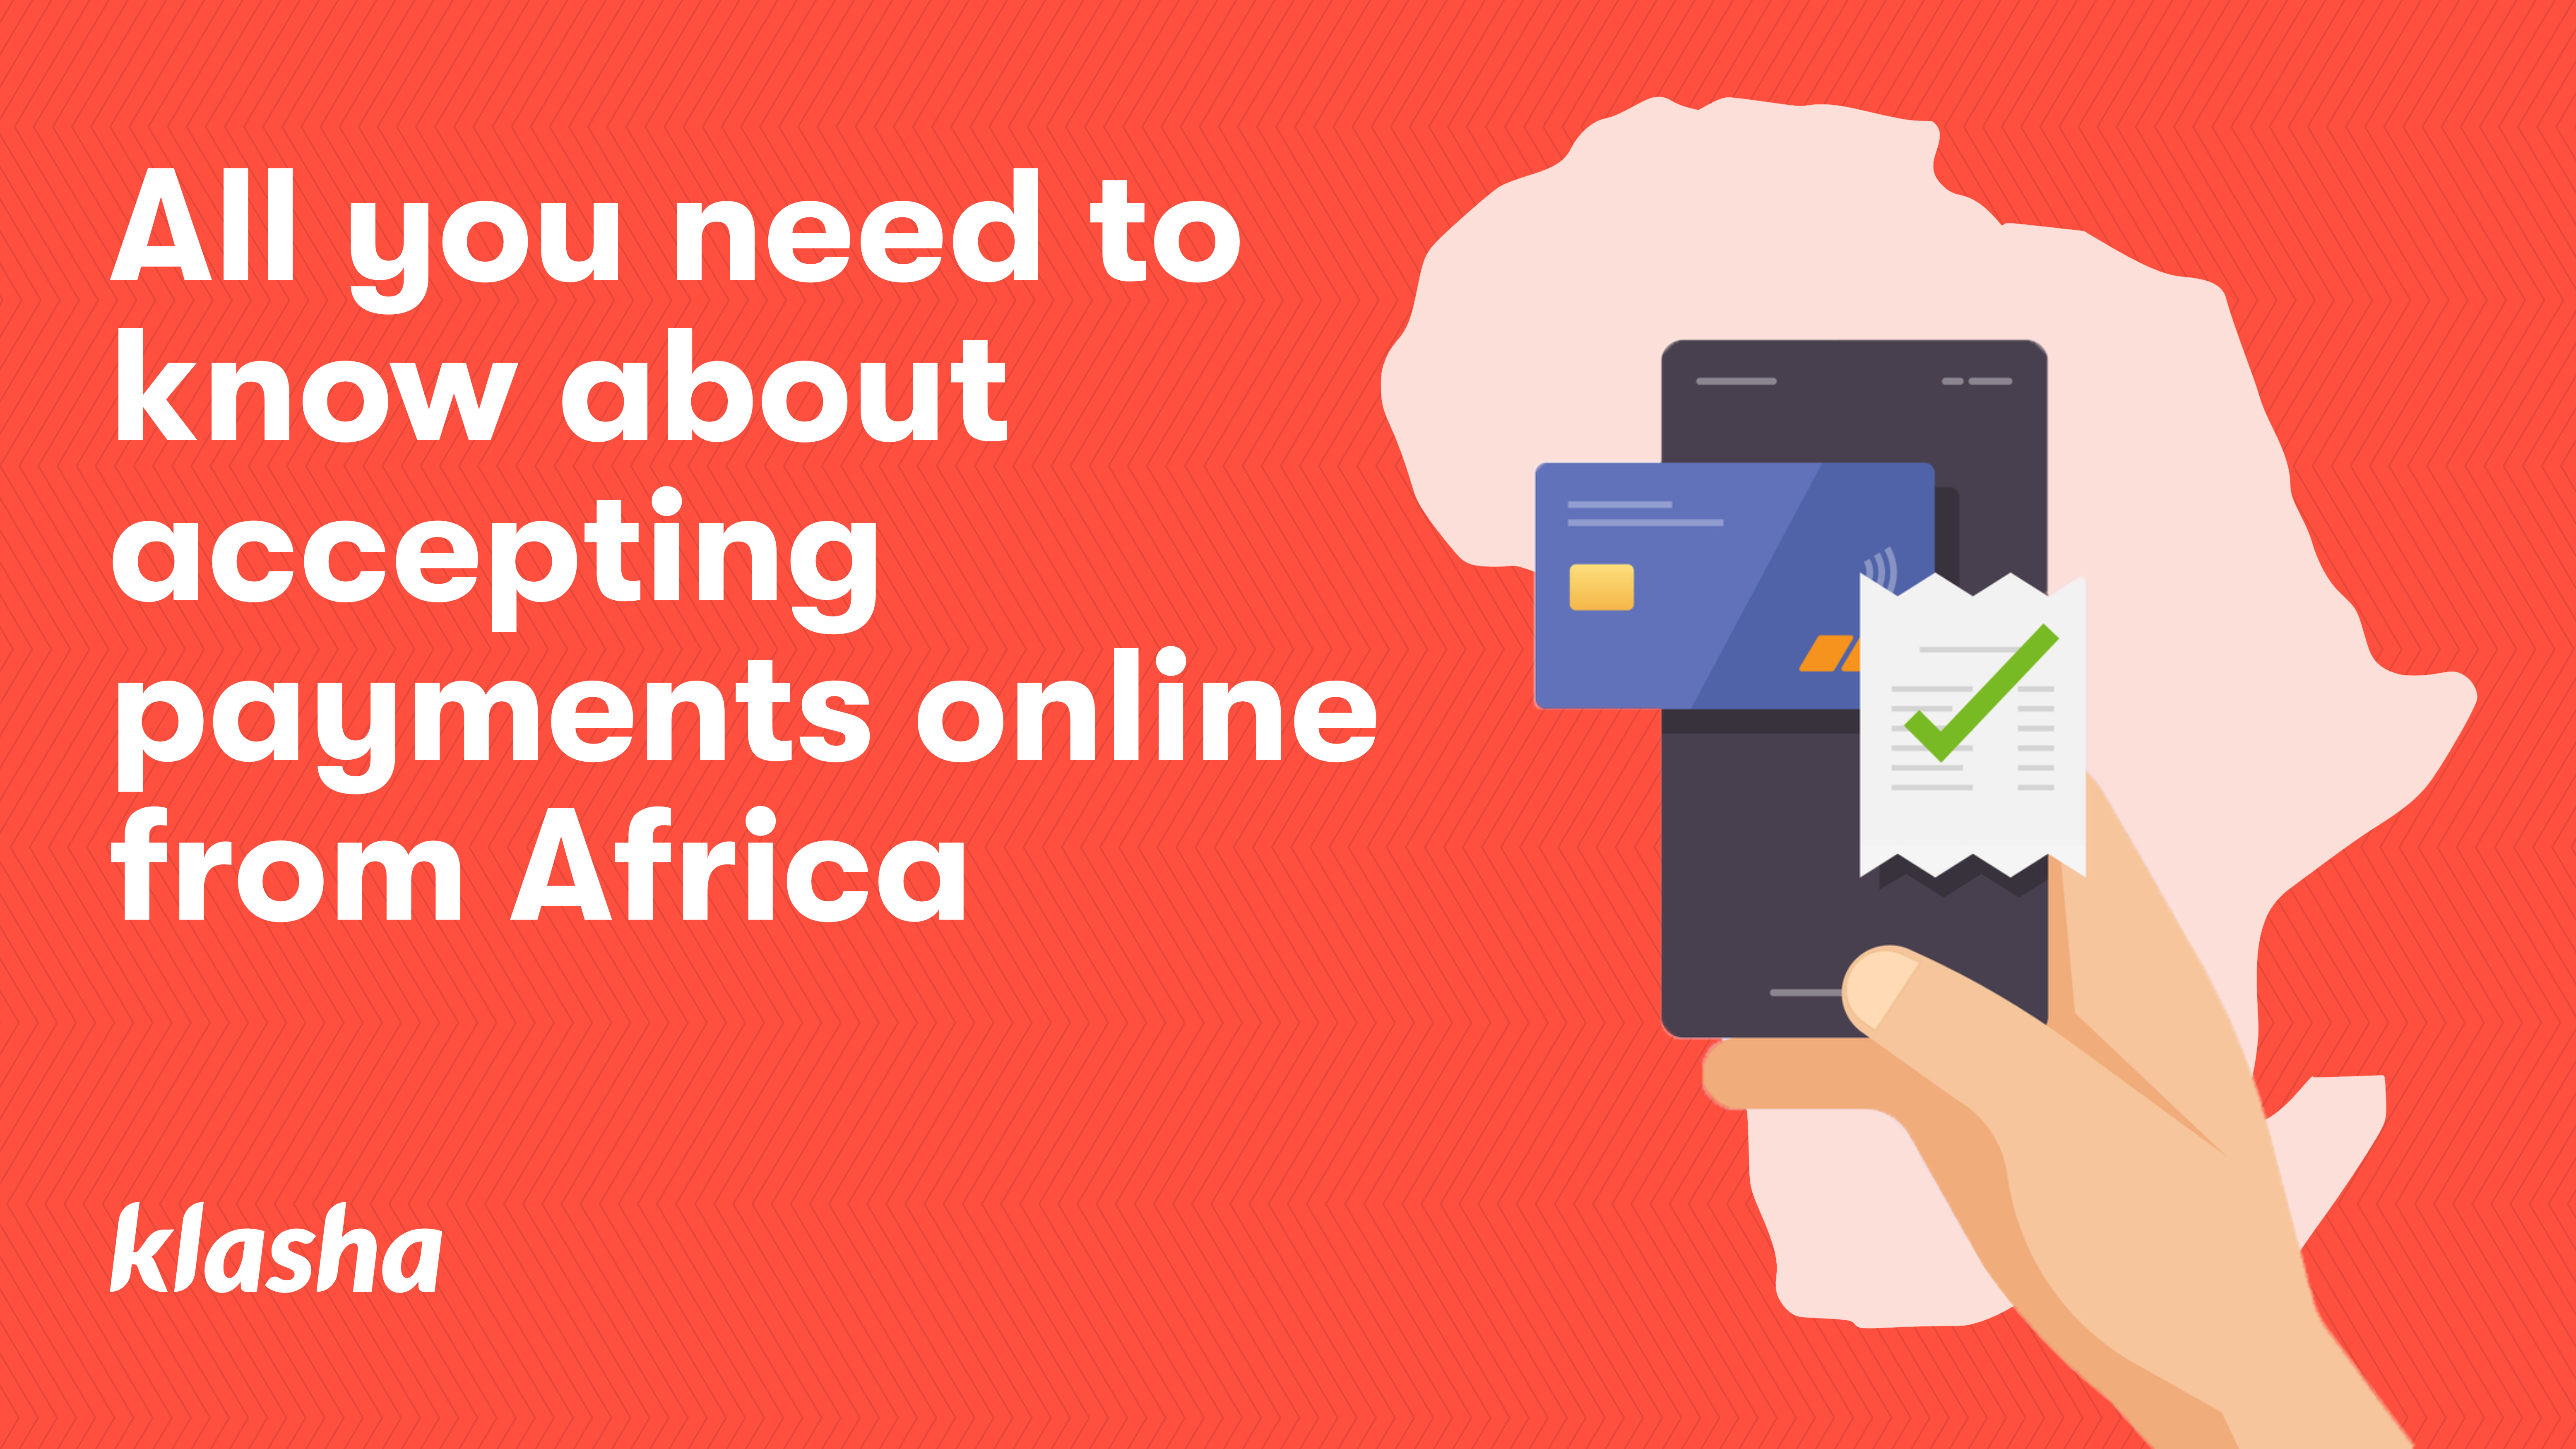 All you need to know about accepting payments online from Africa